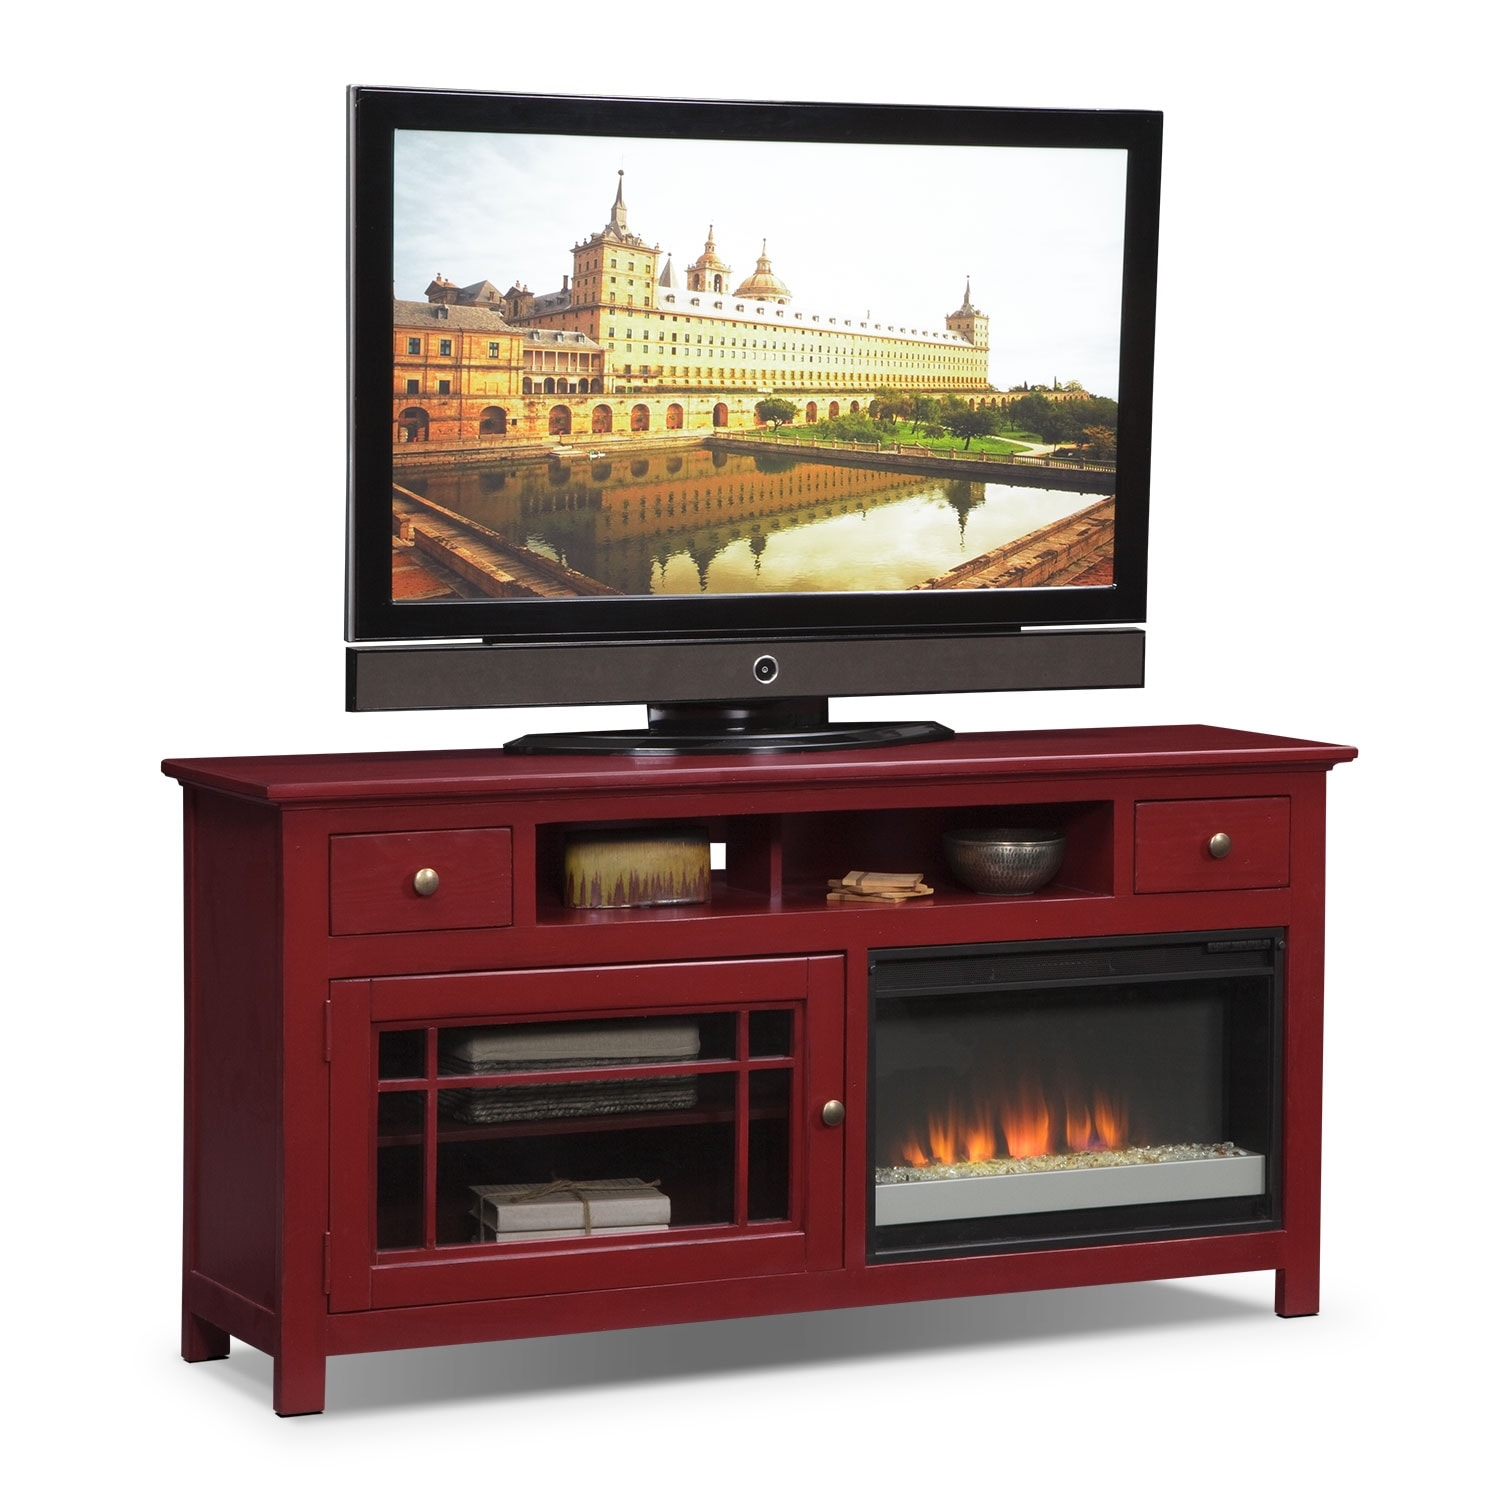 "Entertainment Furniture - Merrick Red 64"" Fireplace TV Stand with Contemporary Insert"